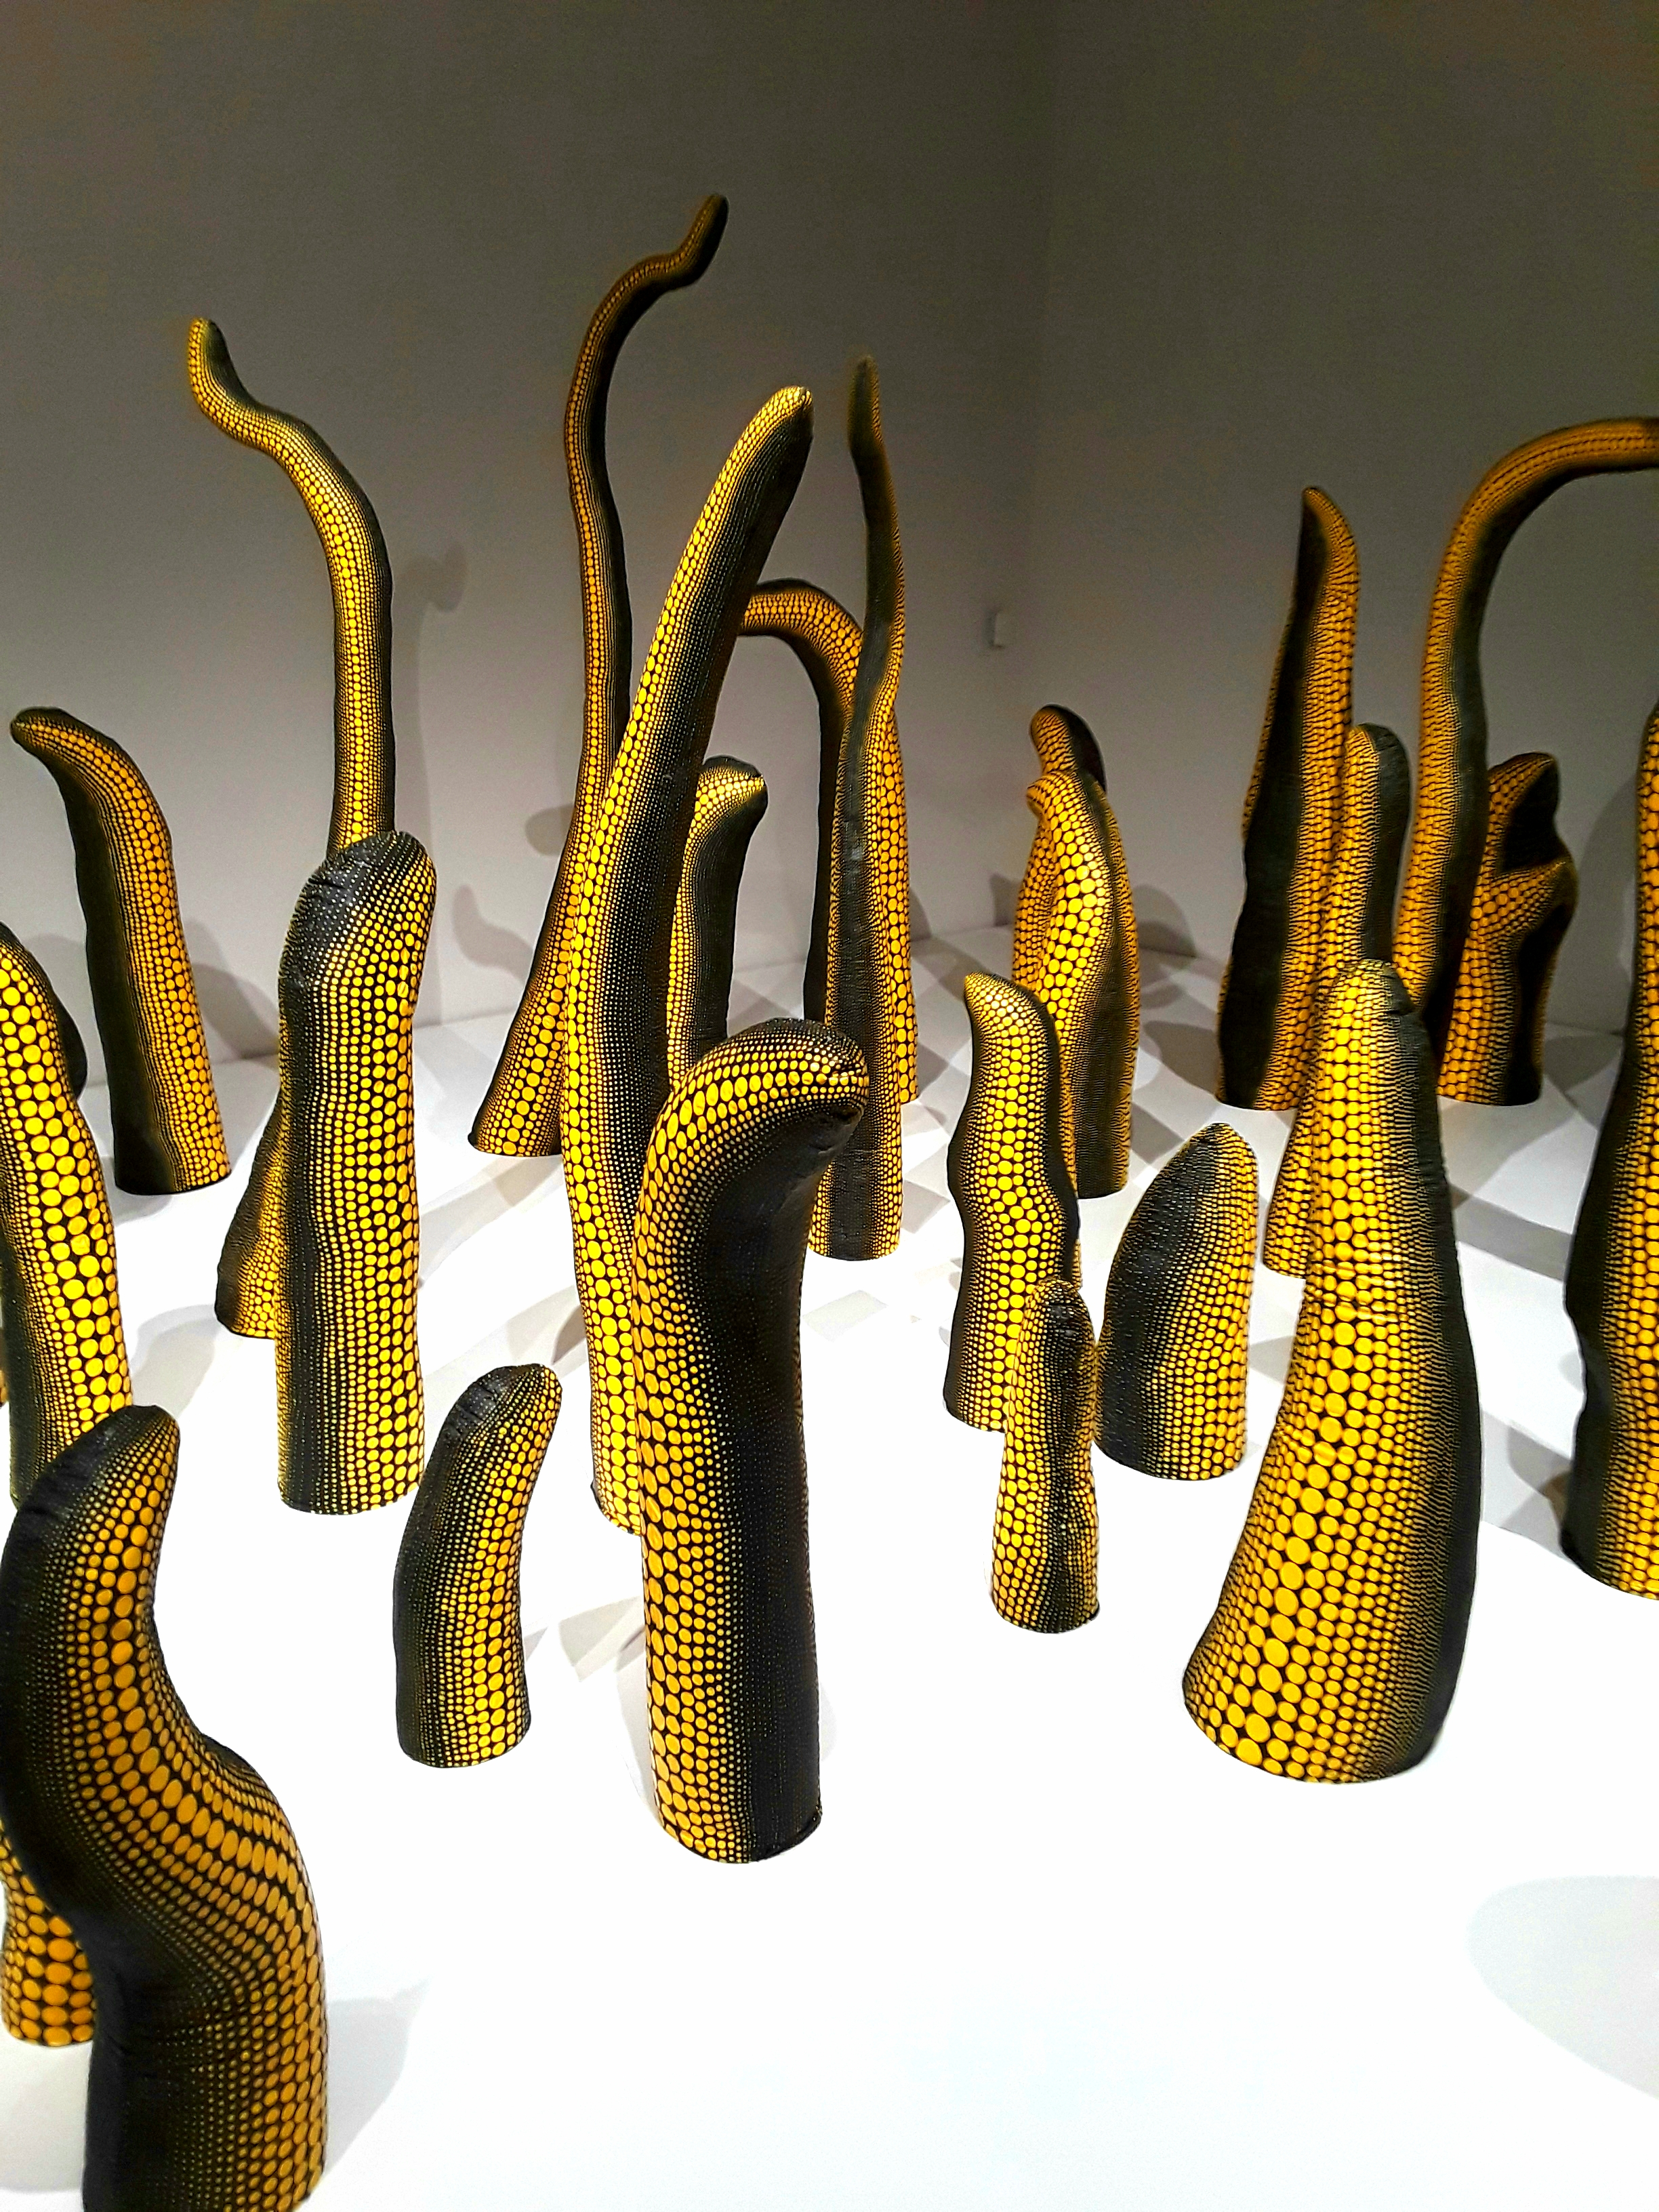 yellow and black sculptures resemble octopus tentacles